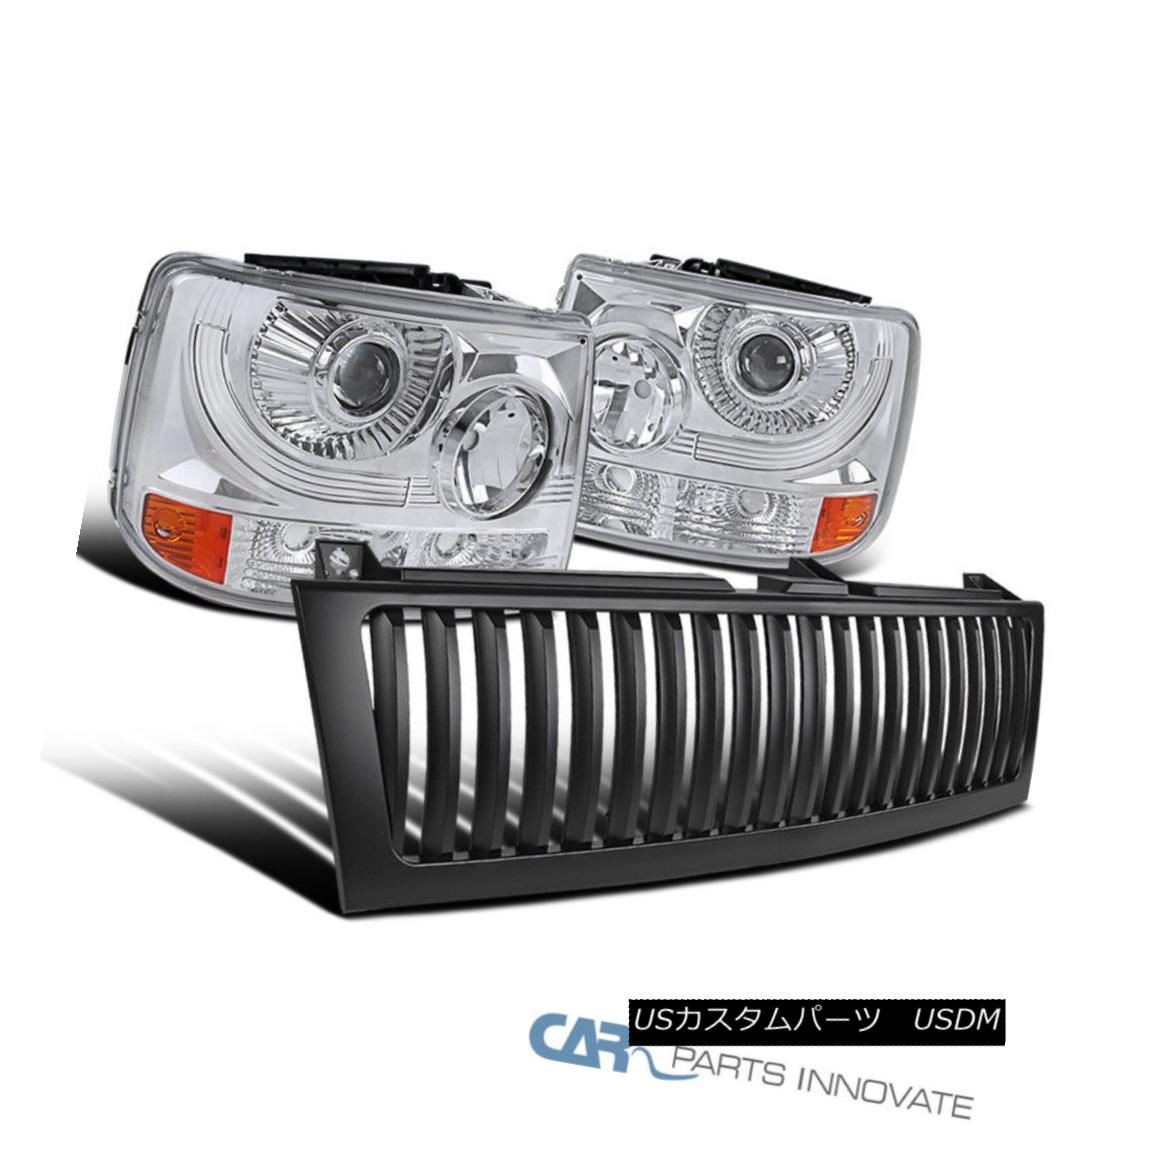 USグリル Chevy 99-02 Silverado 2in1 Clear Projector Head Bumper Lights+Black Hood Grille Chevy 99-02 Silverado 2in1クリアプロジェクターヘッドバンパーライト+ブラックフードグリル